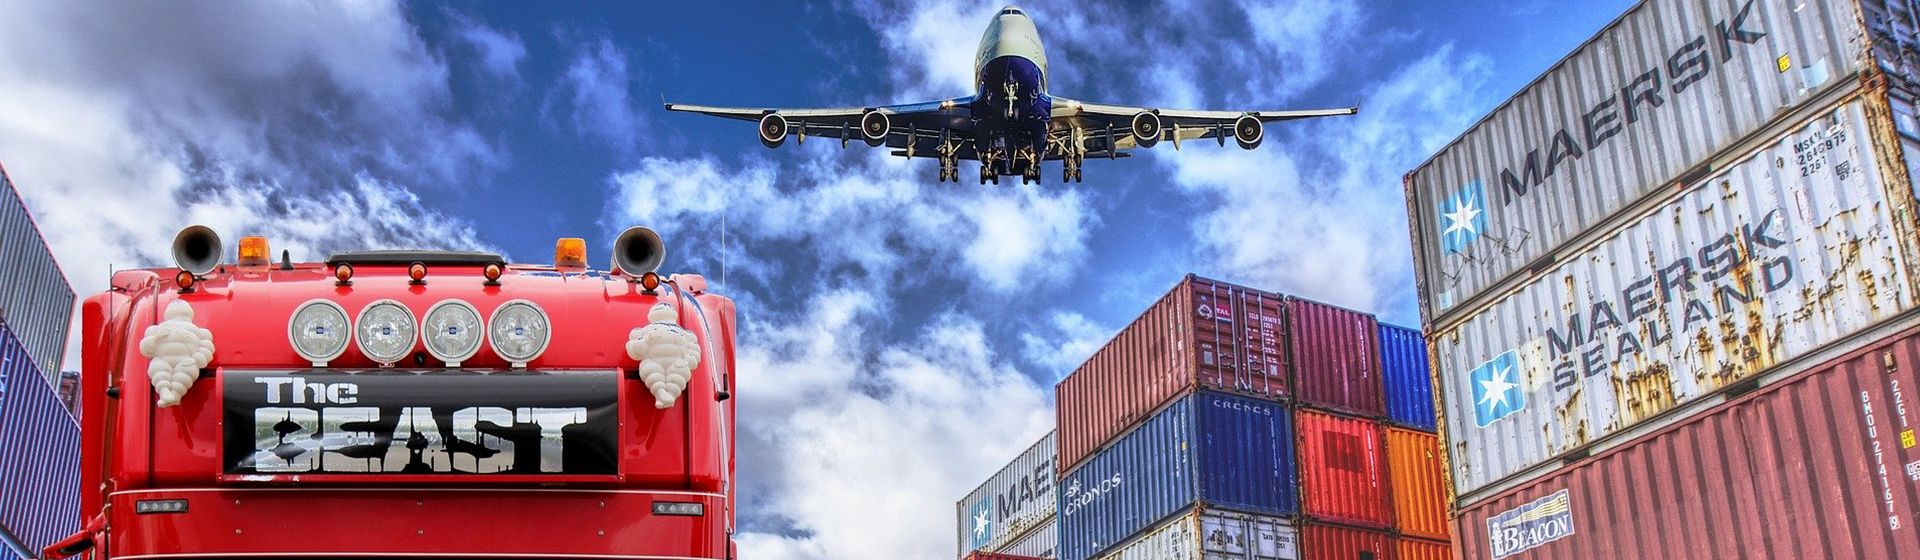 Mitigating risk from supply chain disruptions